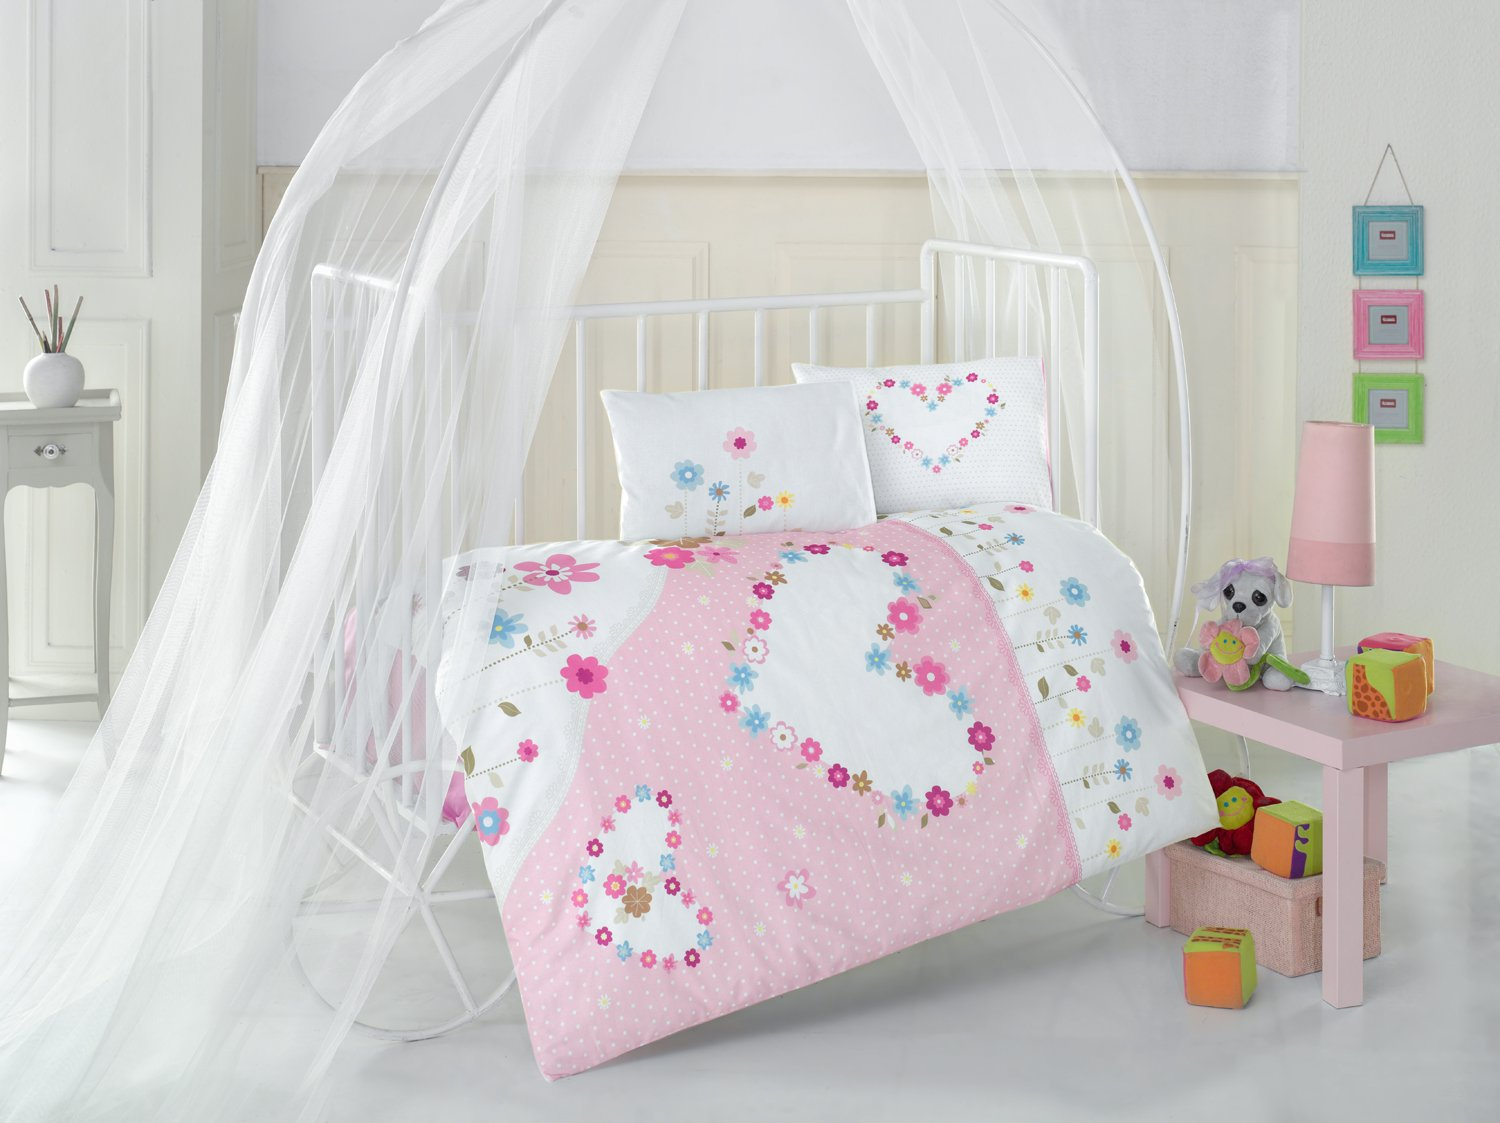 Pretty Pink Hearts Baby Cot Bed Duvet Cover Set, 100% Cotton Soft and Healthy 4-Pieces Bedding Set